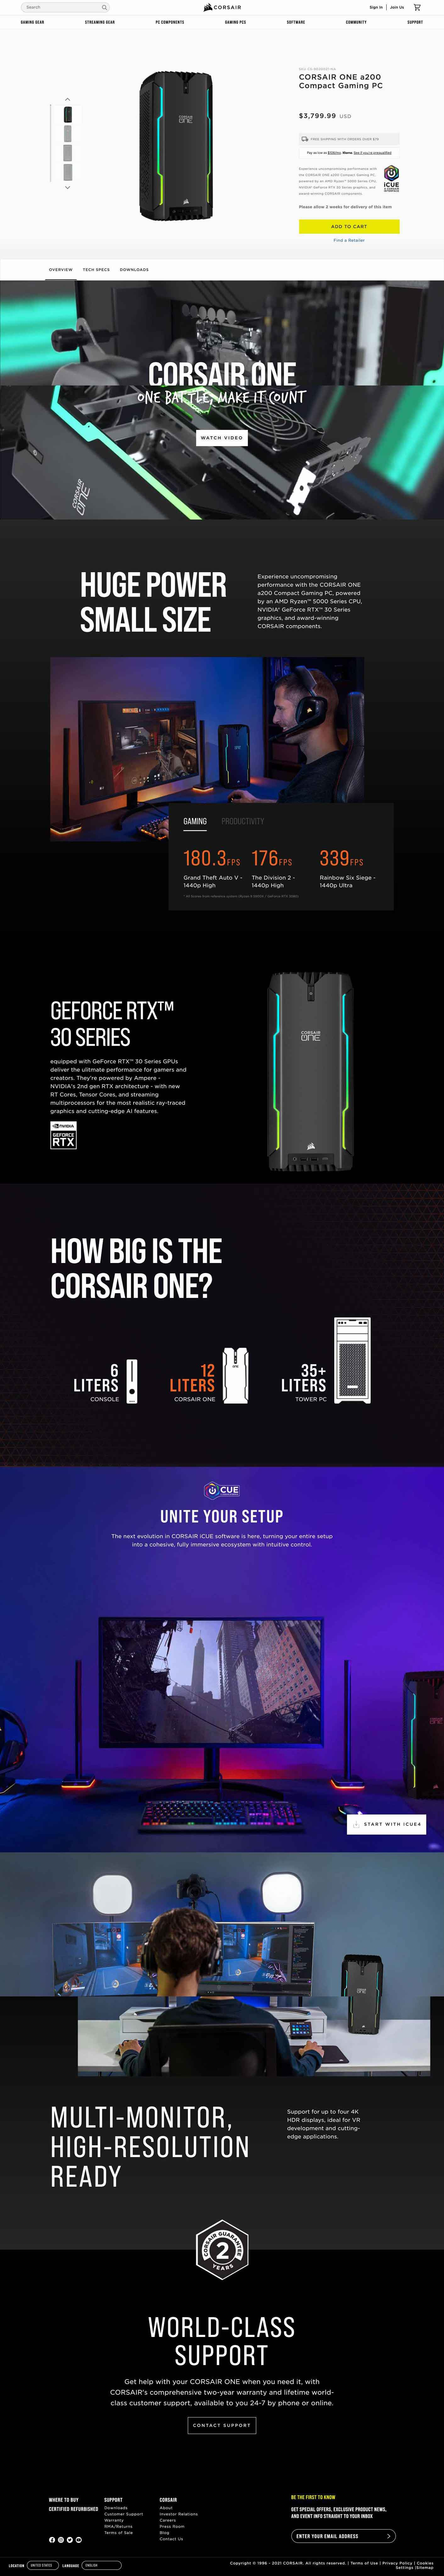 Corsair Website and Landing Page